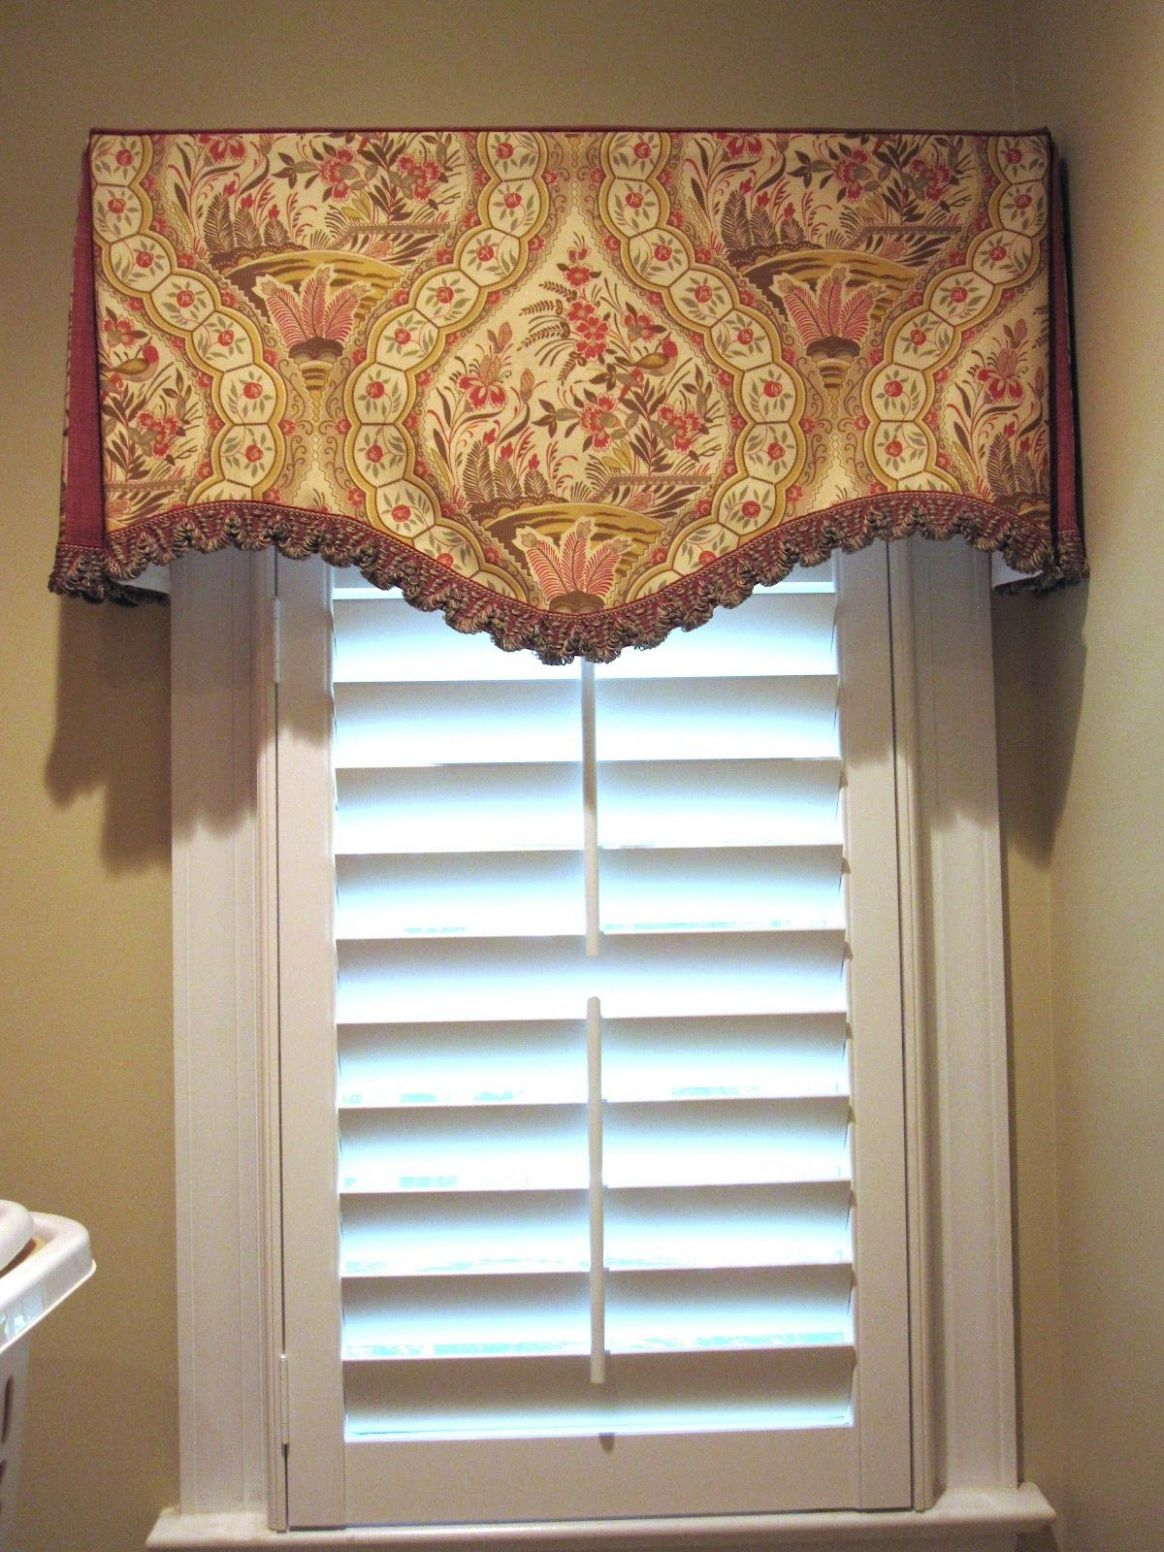 images of window valance treatments | Window Treatments Furniture ...